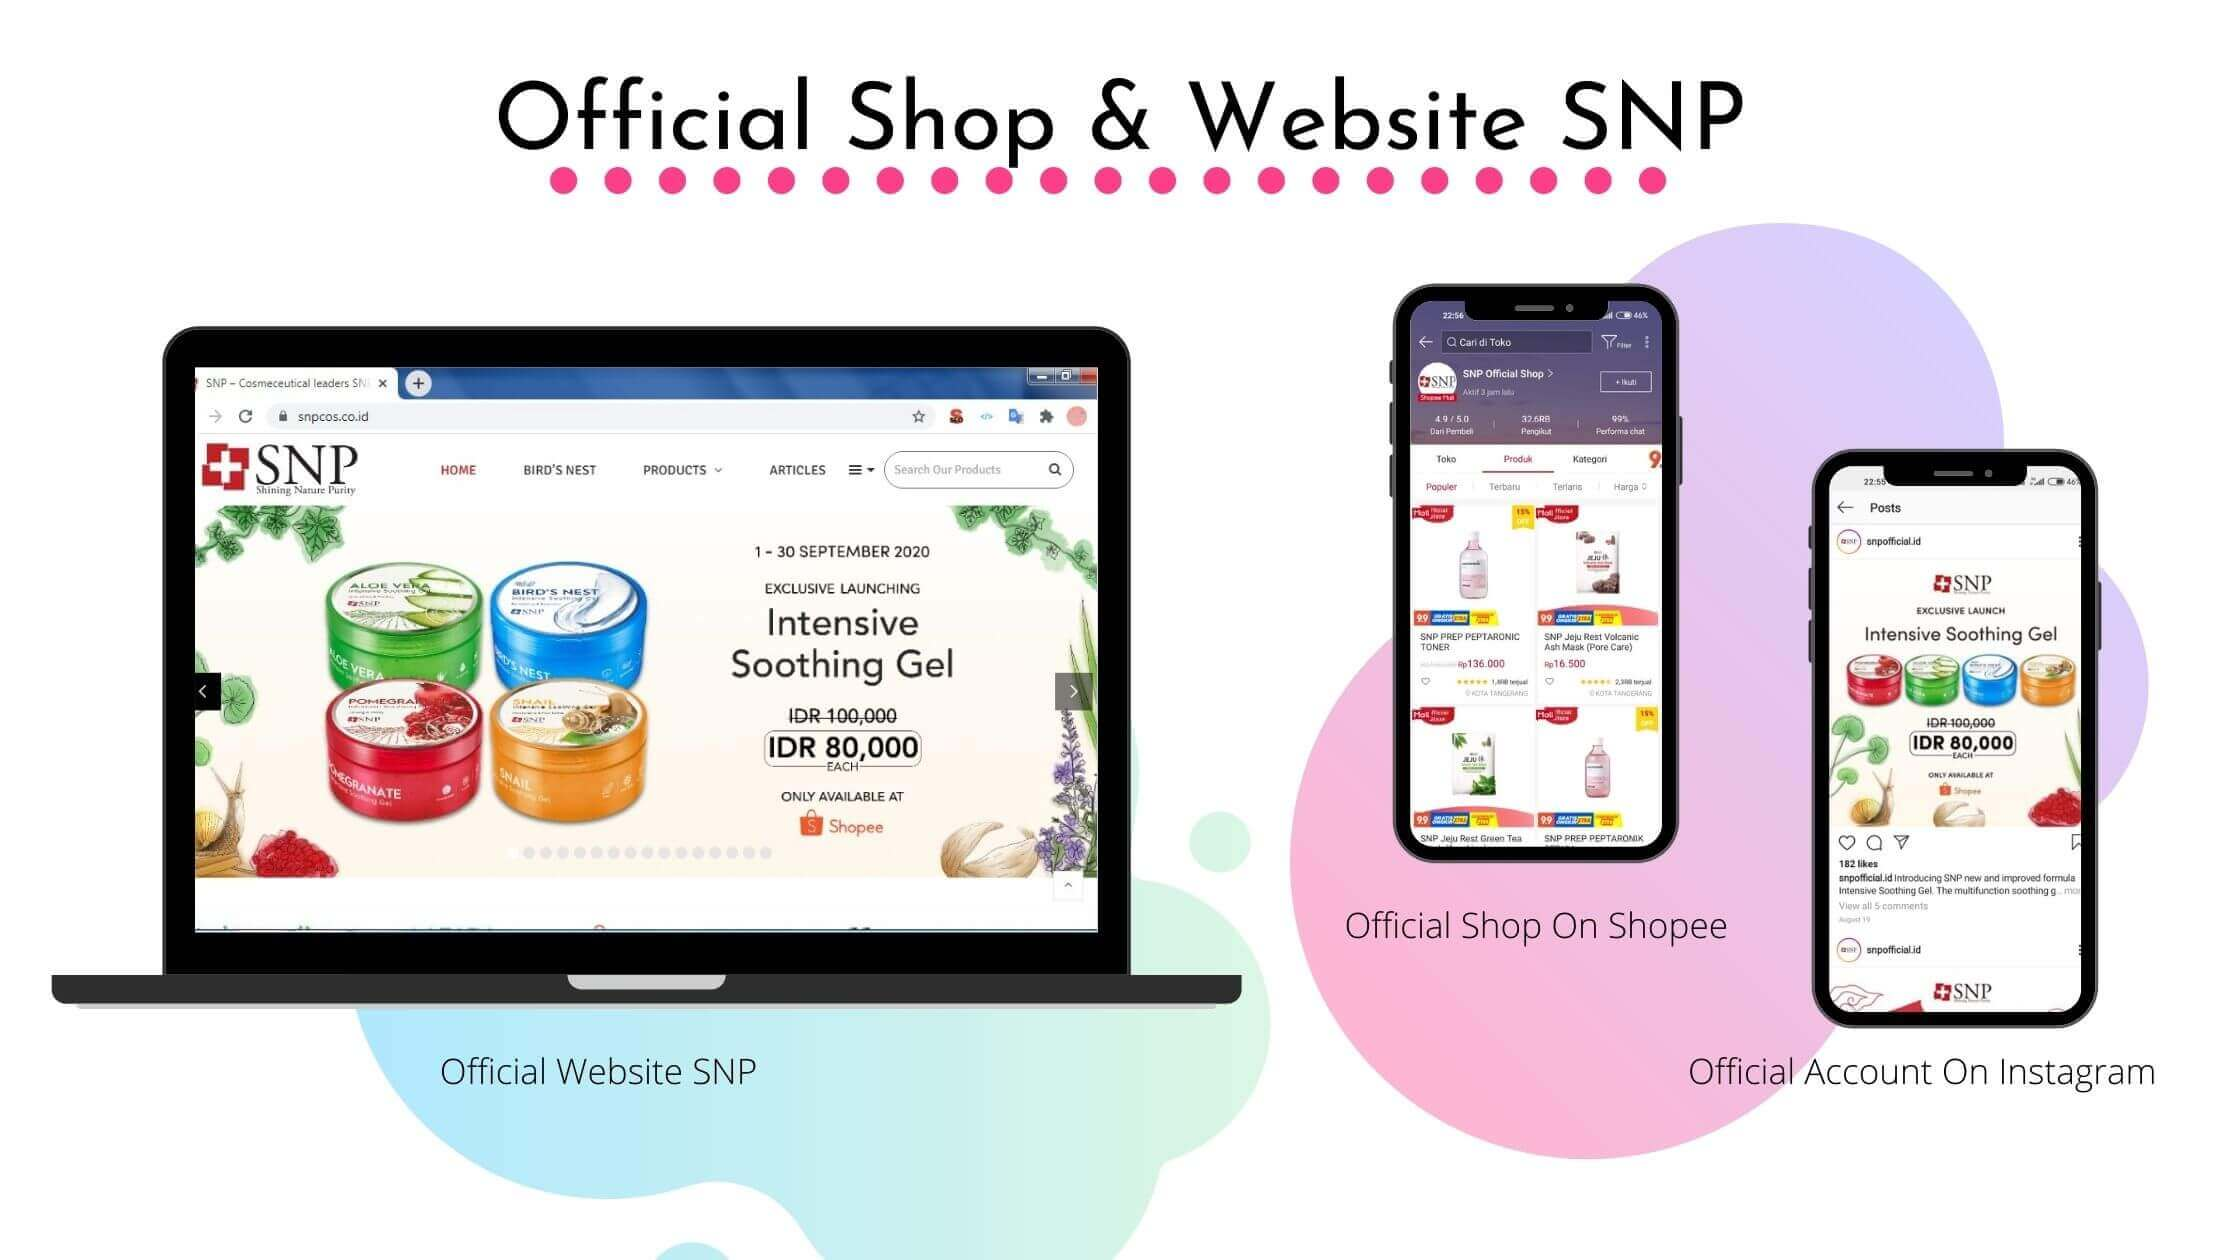 snp website dan shopee